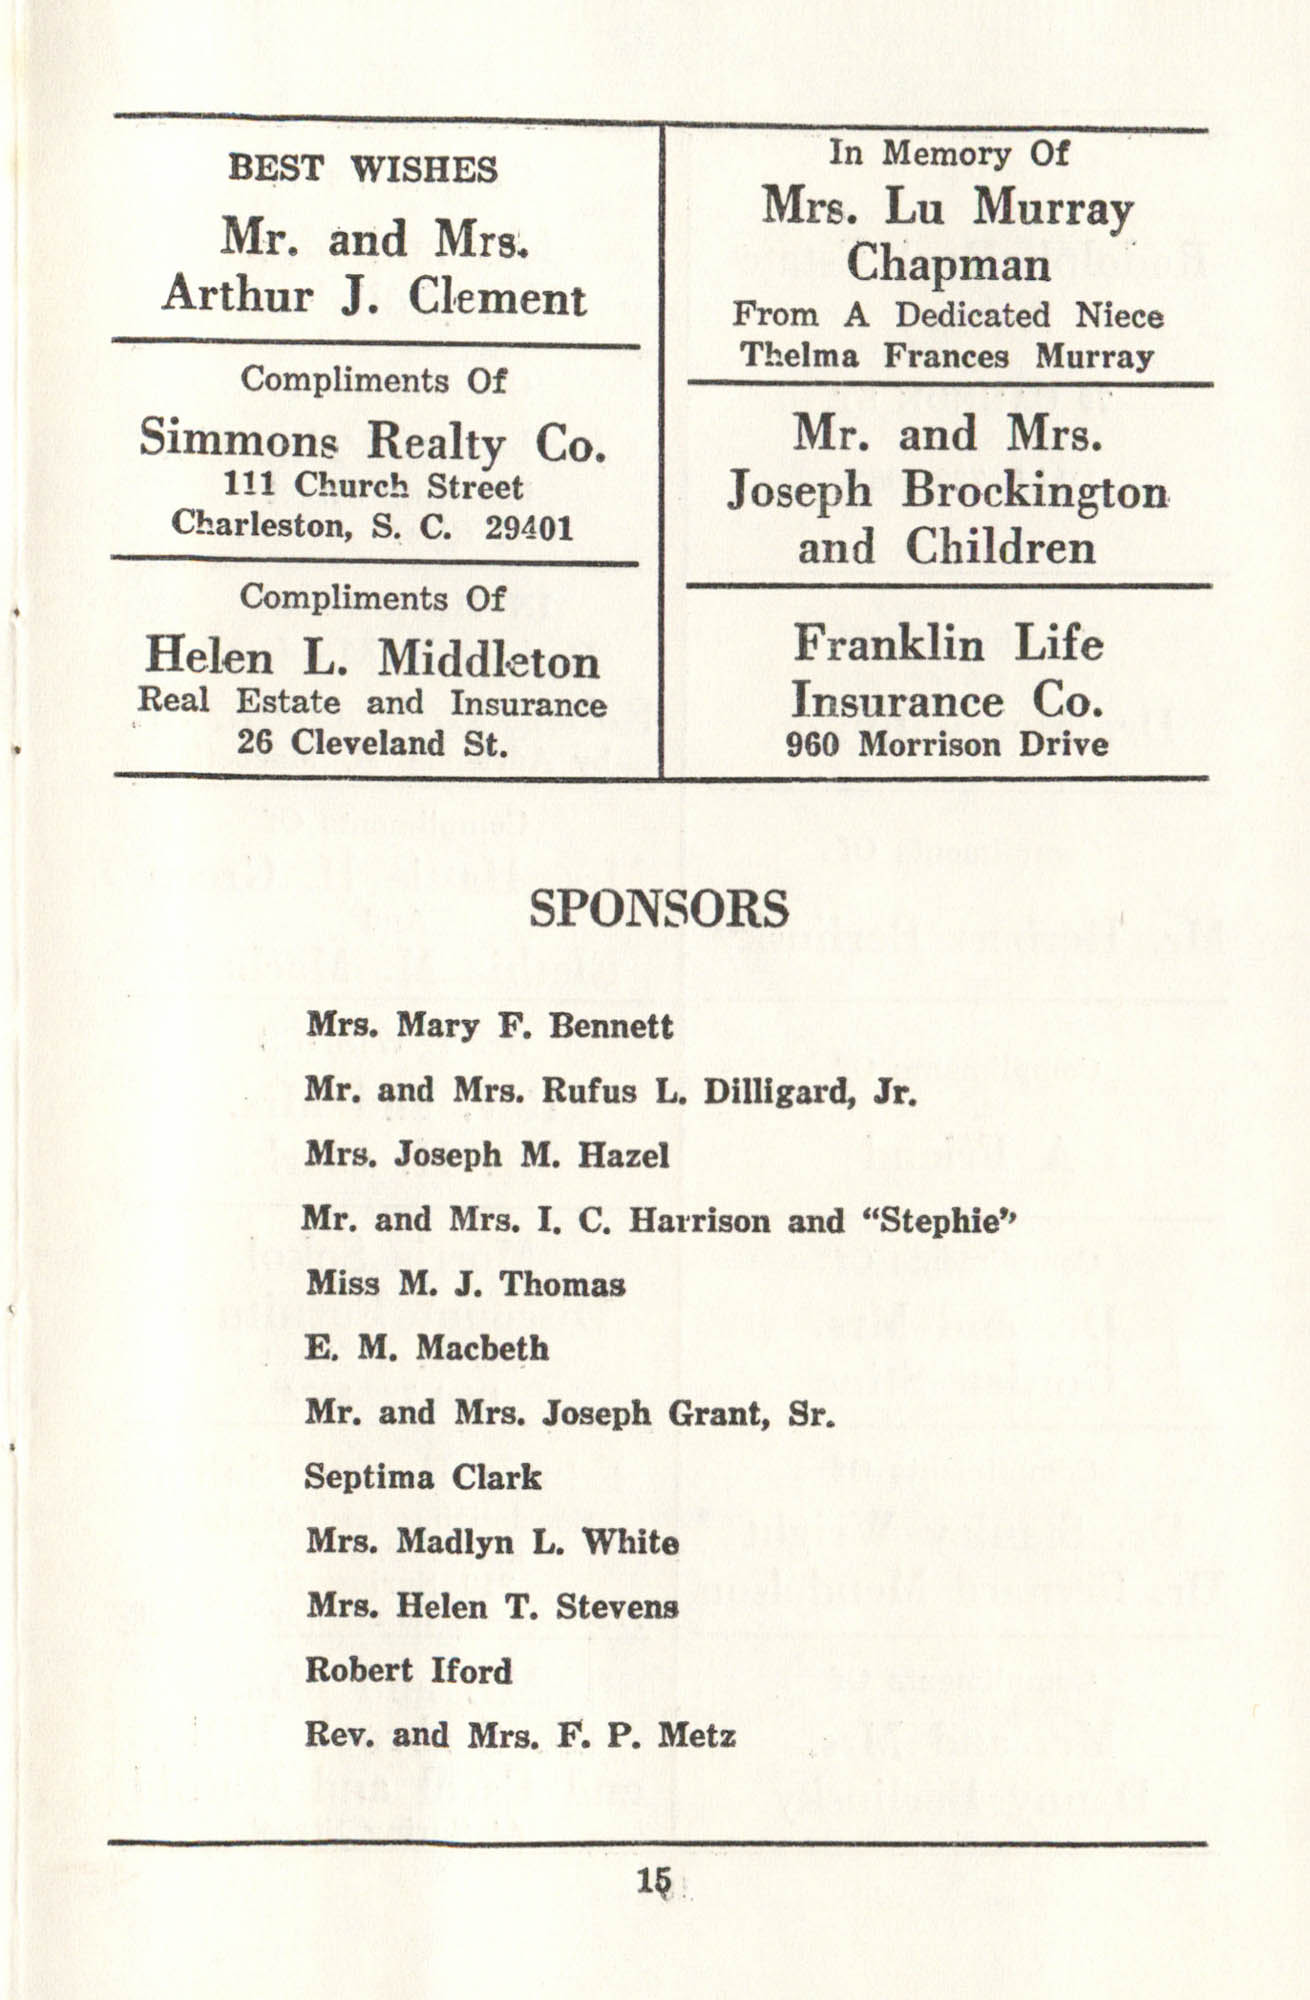 First Annual Martin Luther King, Jr. Birthday Celebration, Page 15